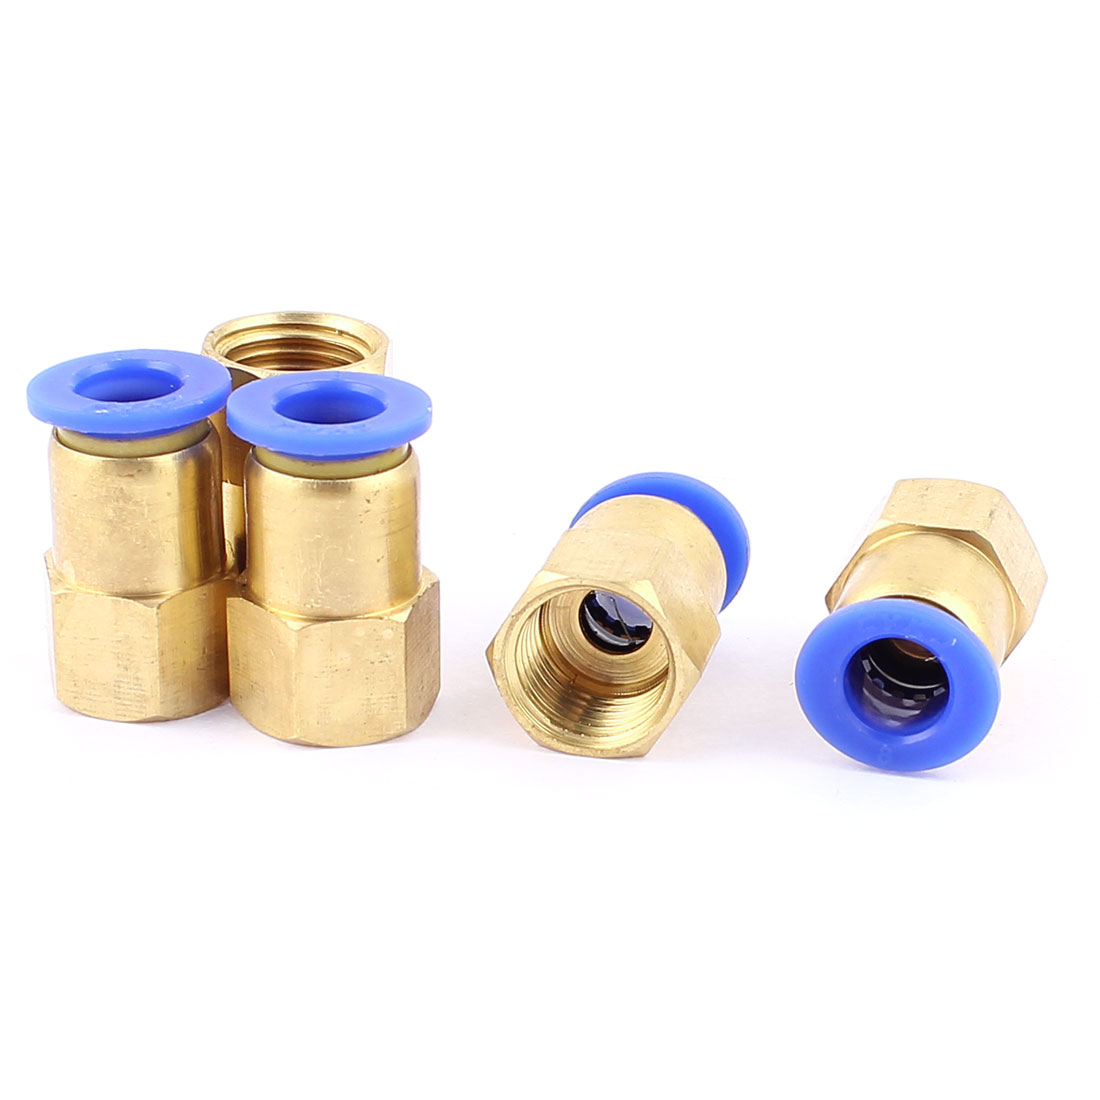 5 Pcs 1/4 BSP Thread to 8mm Push in Pneumatic Air Quick Connect Tube Fitting Coupler